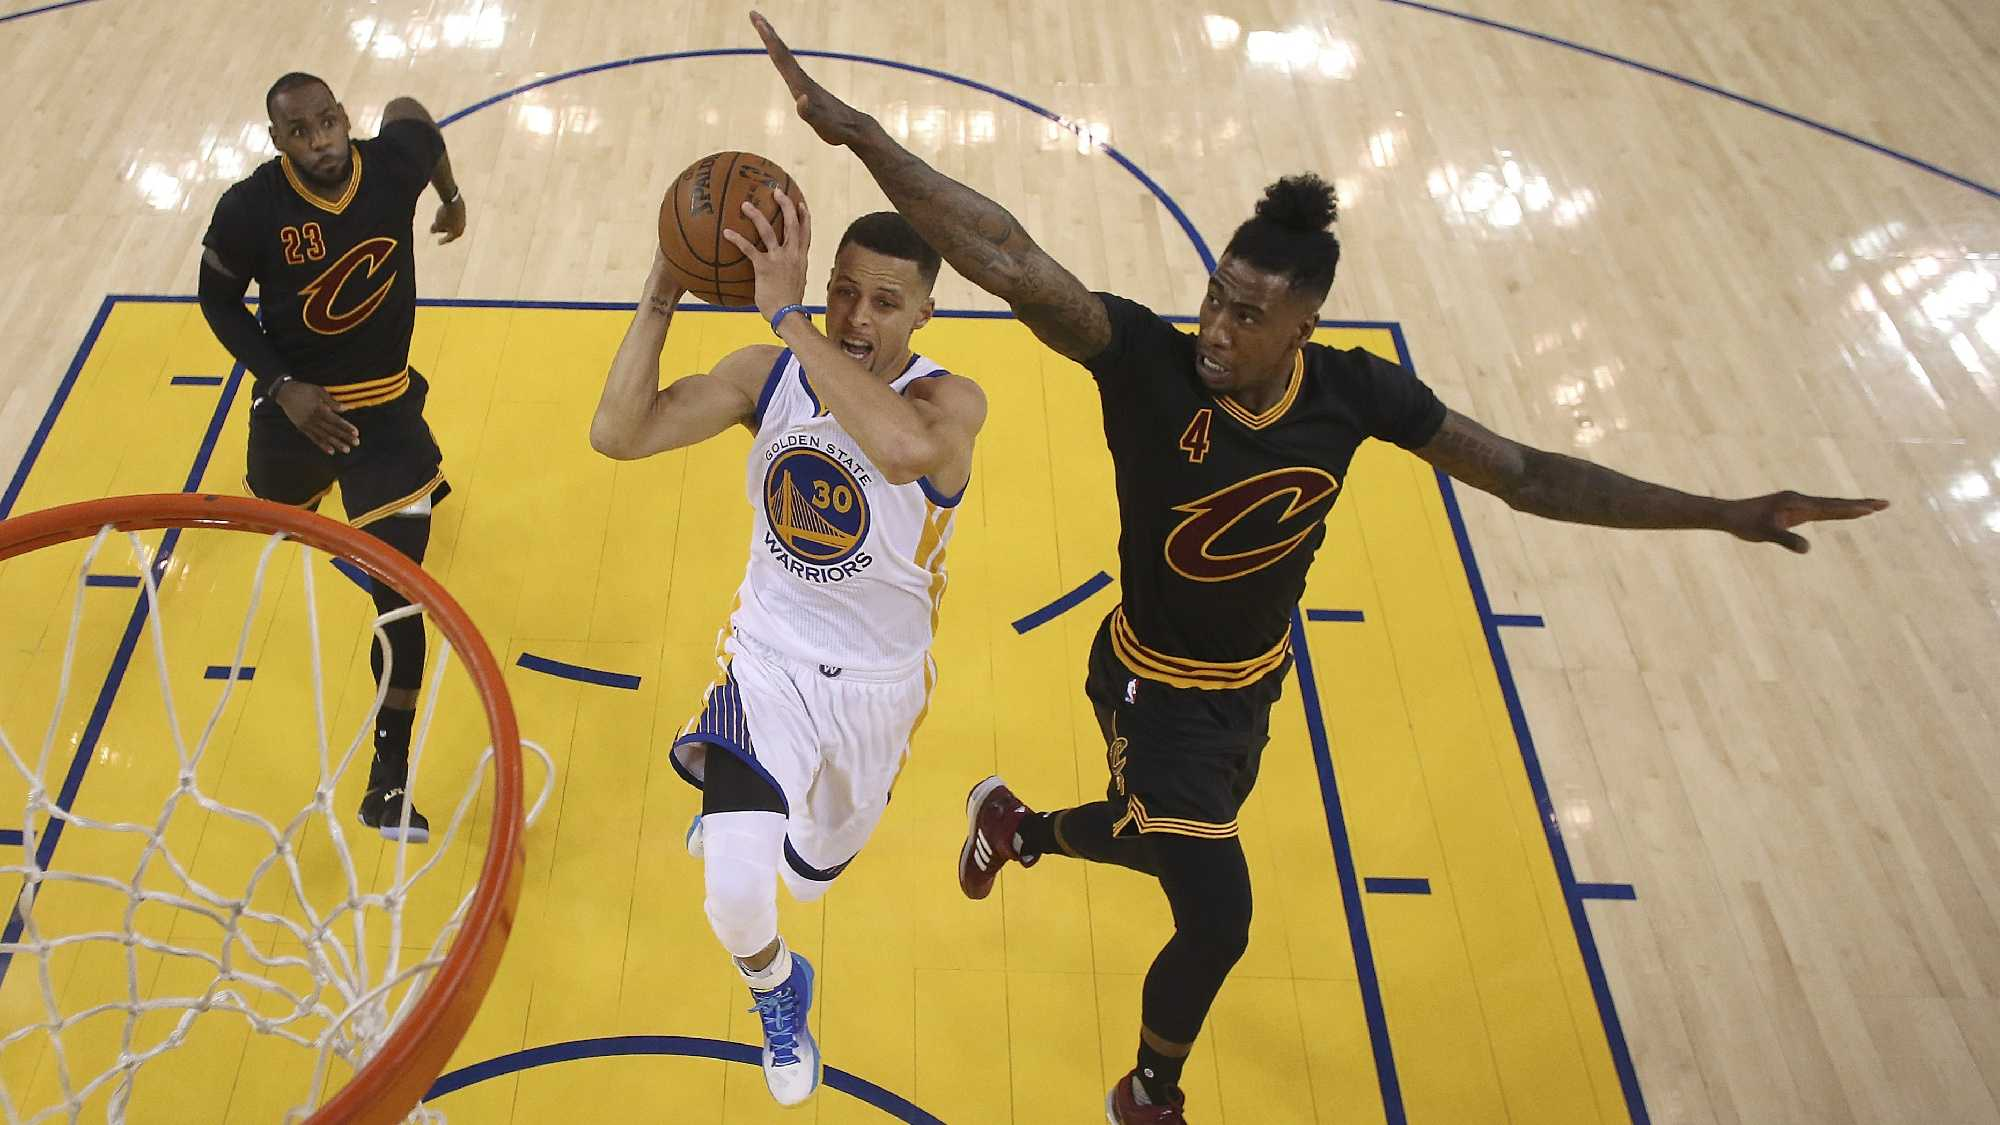 Golden State Warriors guard Stephen Curry (30) shoots between Cleveland Cavaliers forward LeBron James (23) and guard Iman Shumpert (4) during the first half of Game 5 of basketball's NBA Finals in Oakland, Calif., Monday, June 13, 2016.